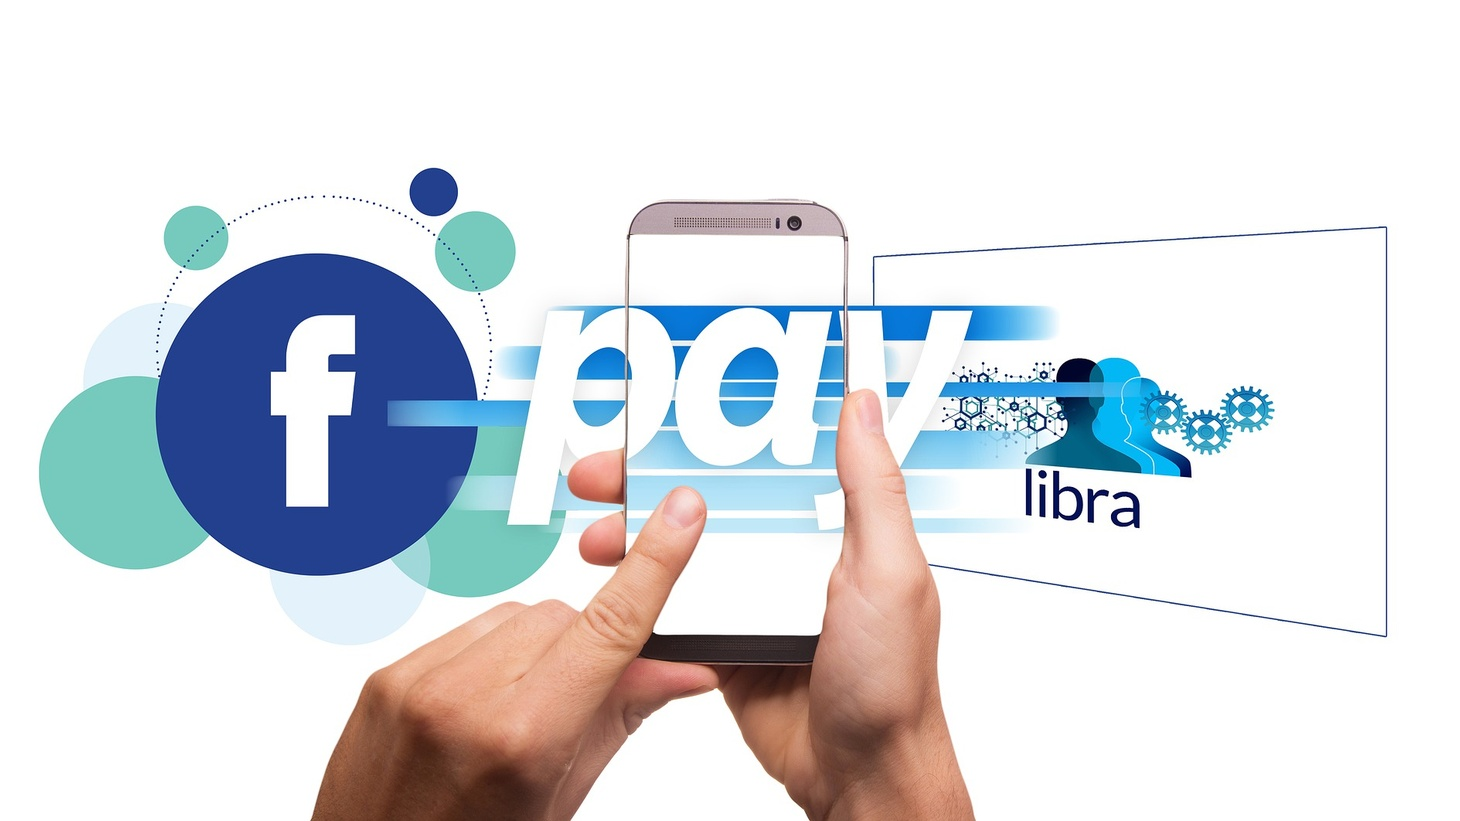 With Libra, Facebook wants to create its own money but lawmakers are skeptical.